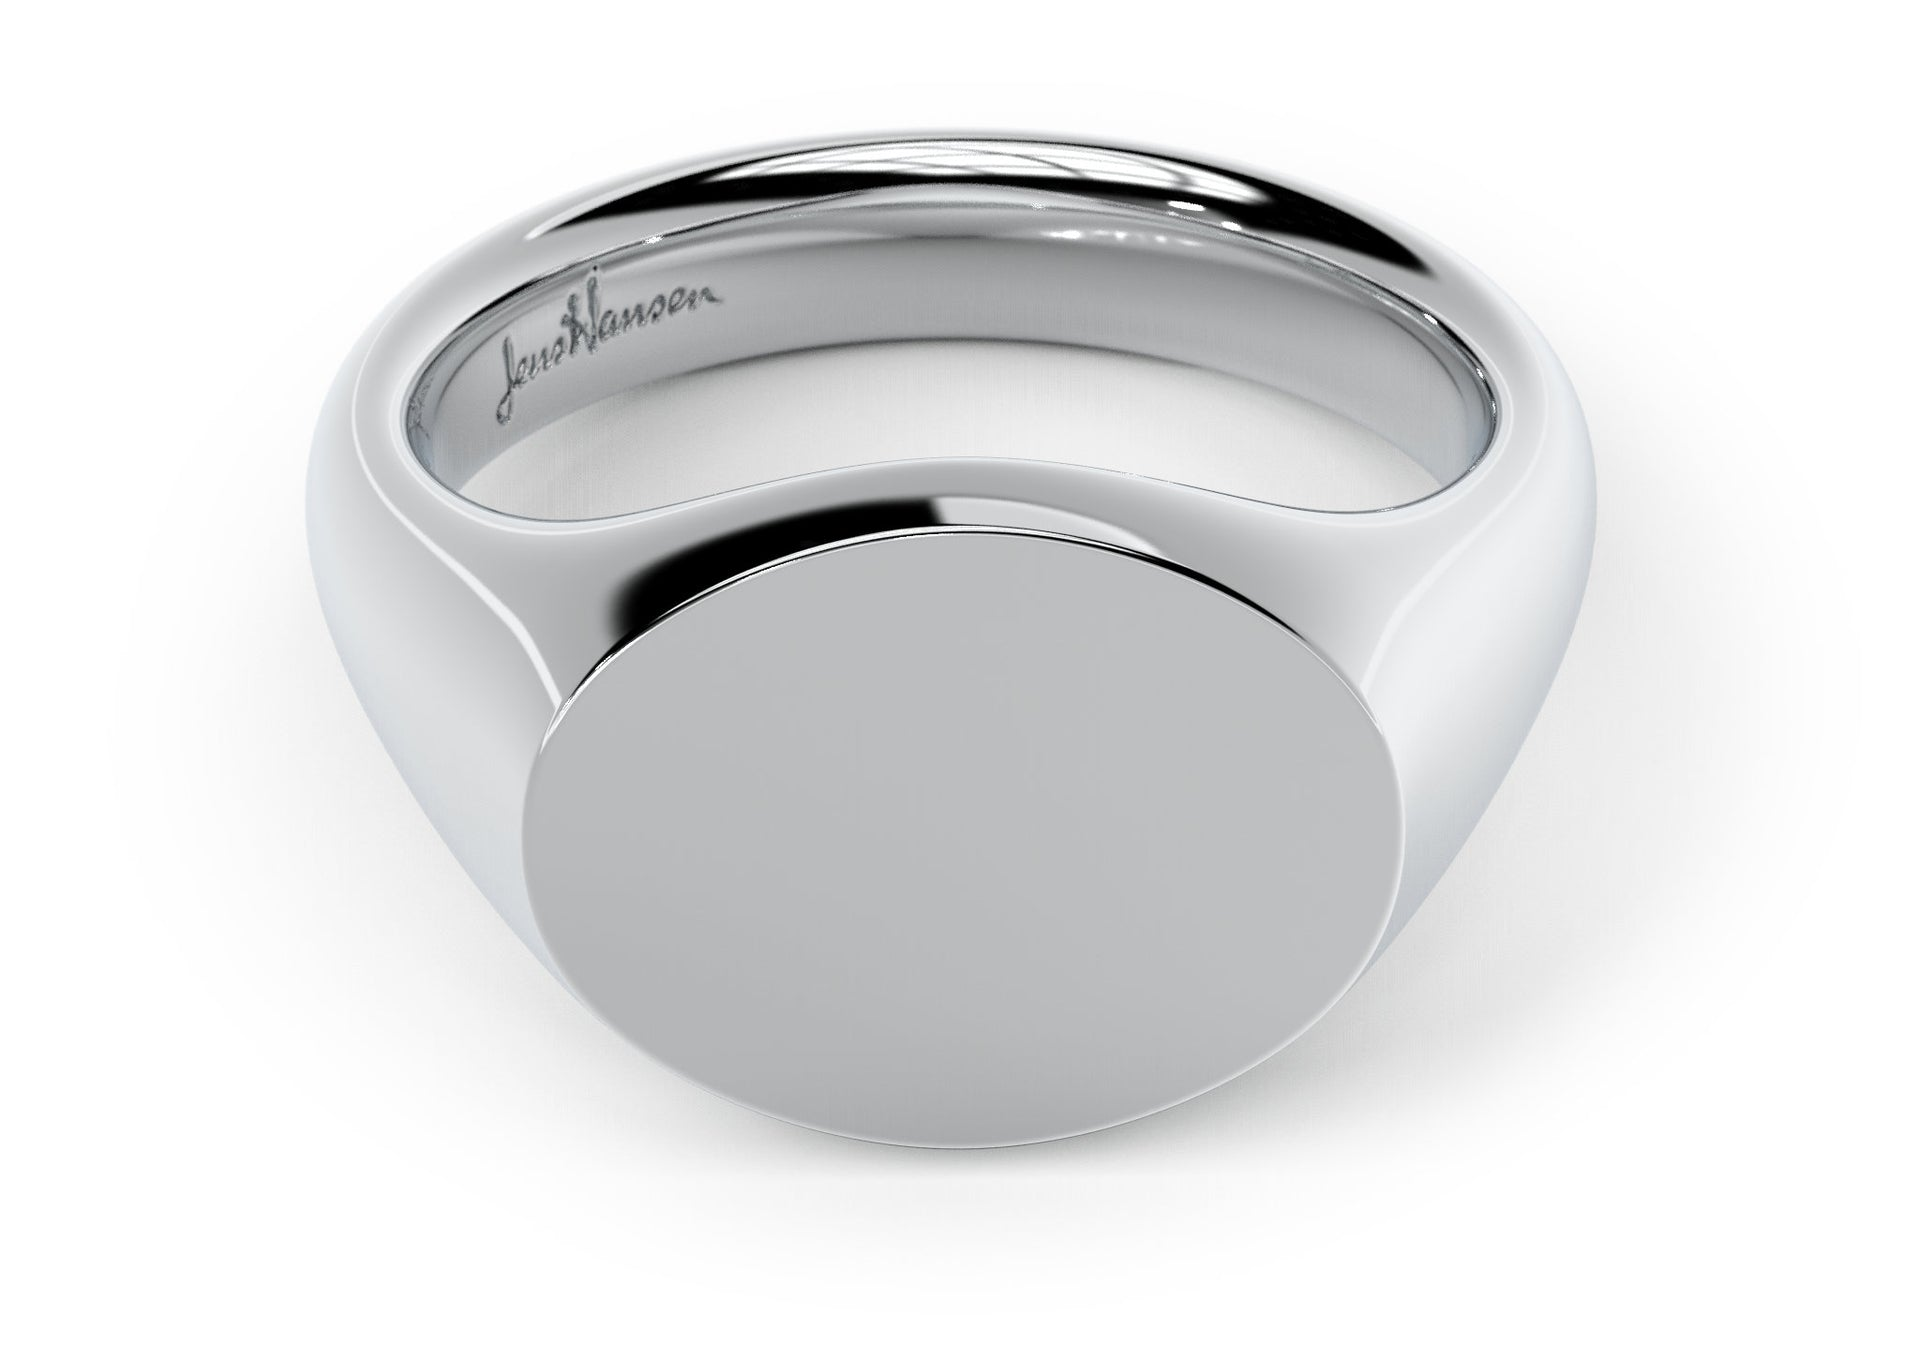 Landscape Signet Ring, White Gold & Platinum